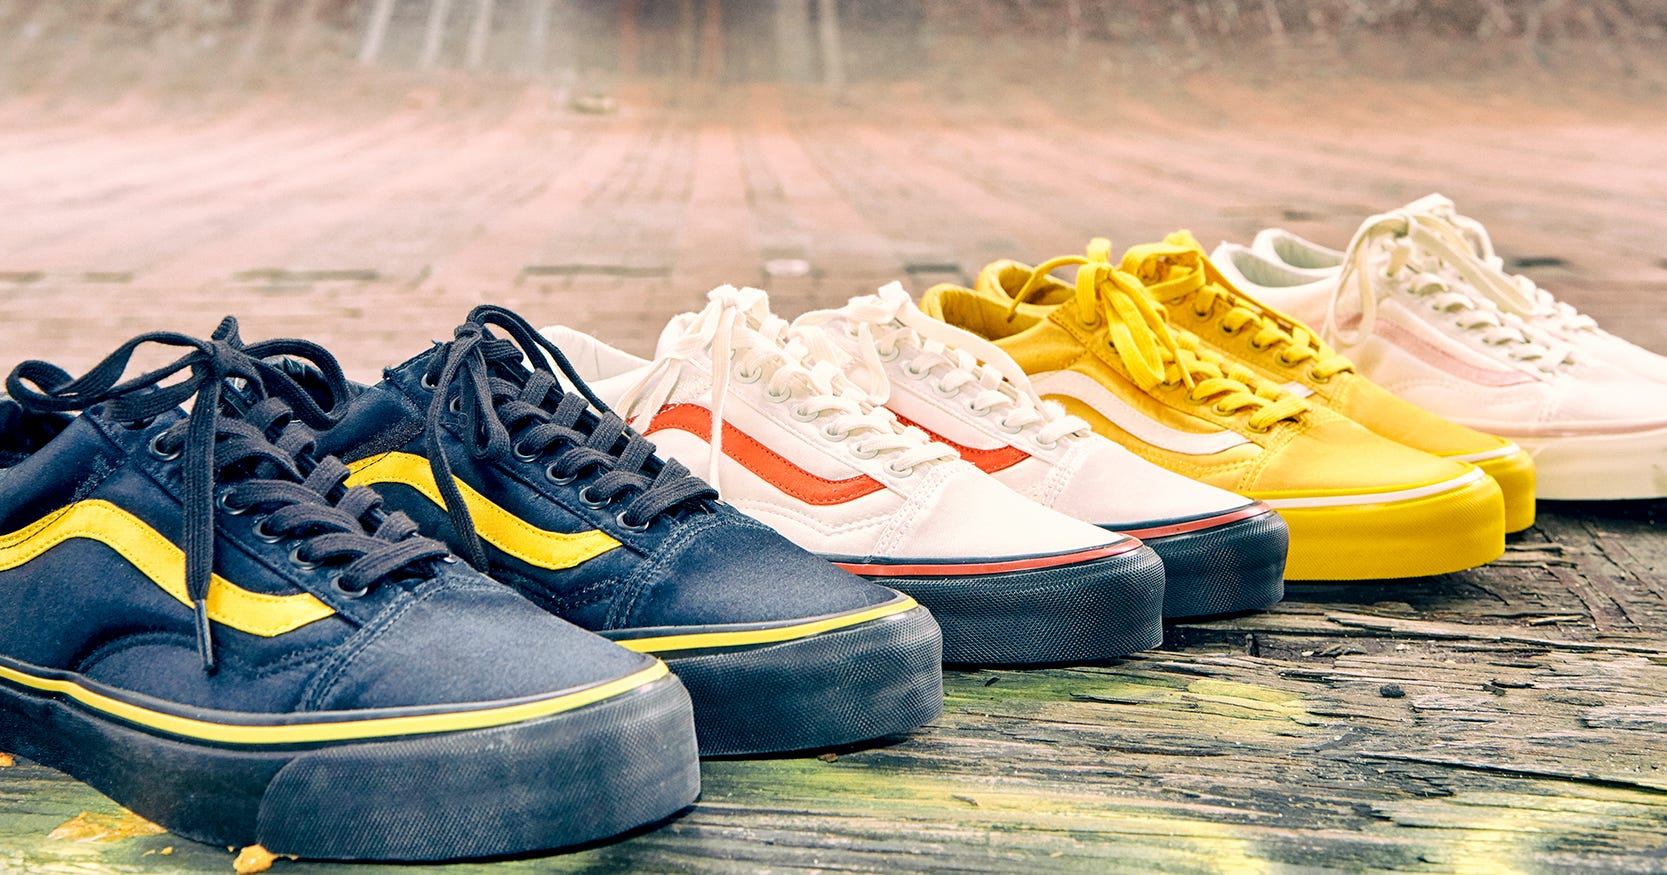 These New Vans Sneakers Are Selling Out Like Lightning forecast